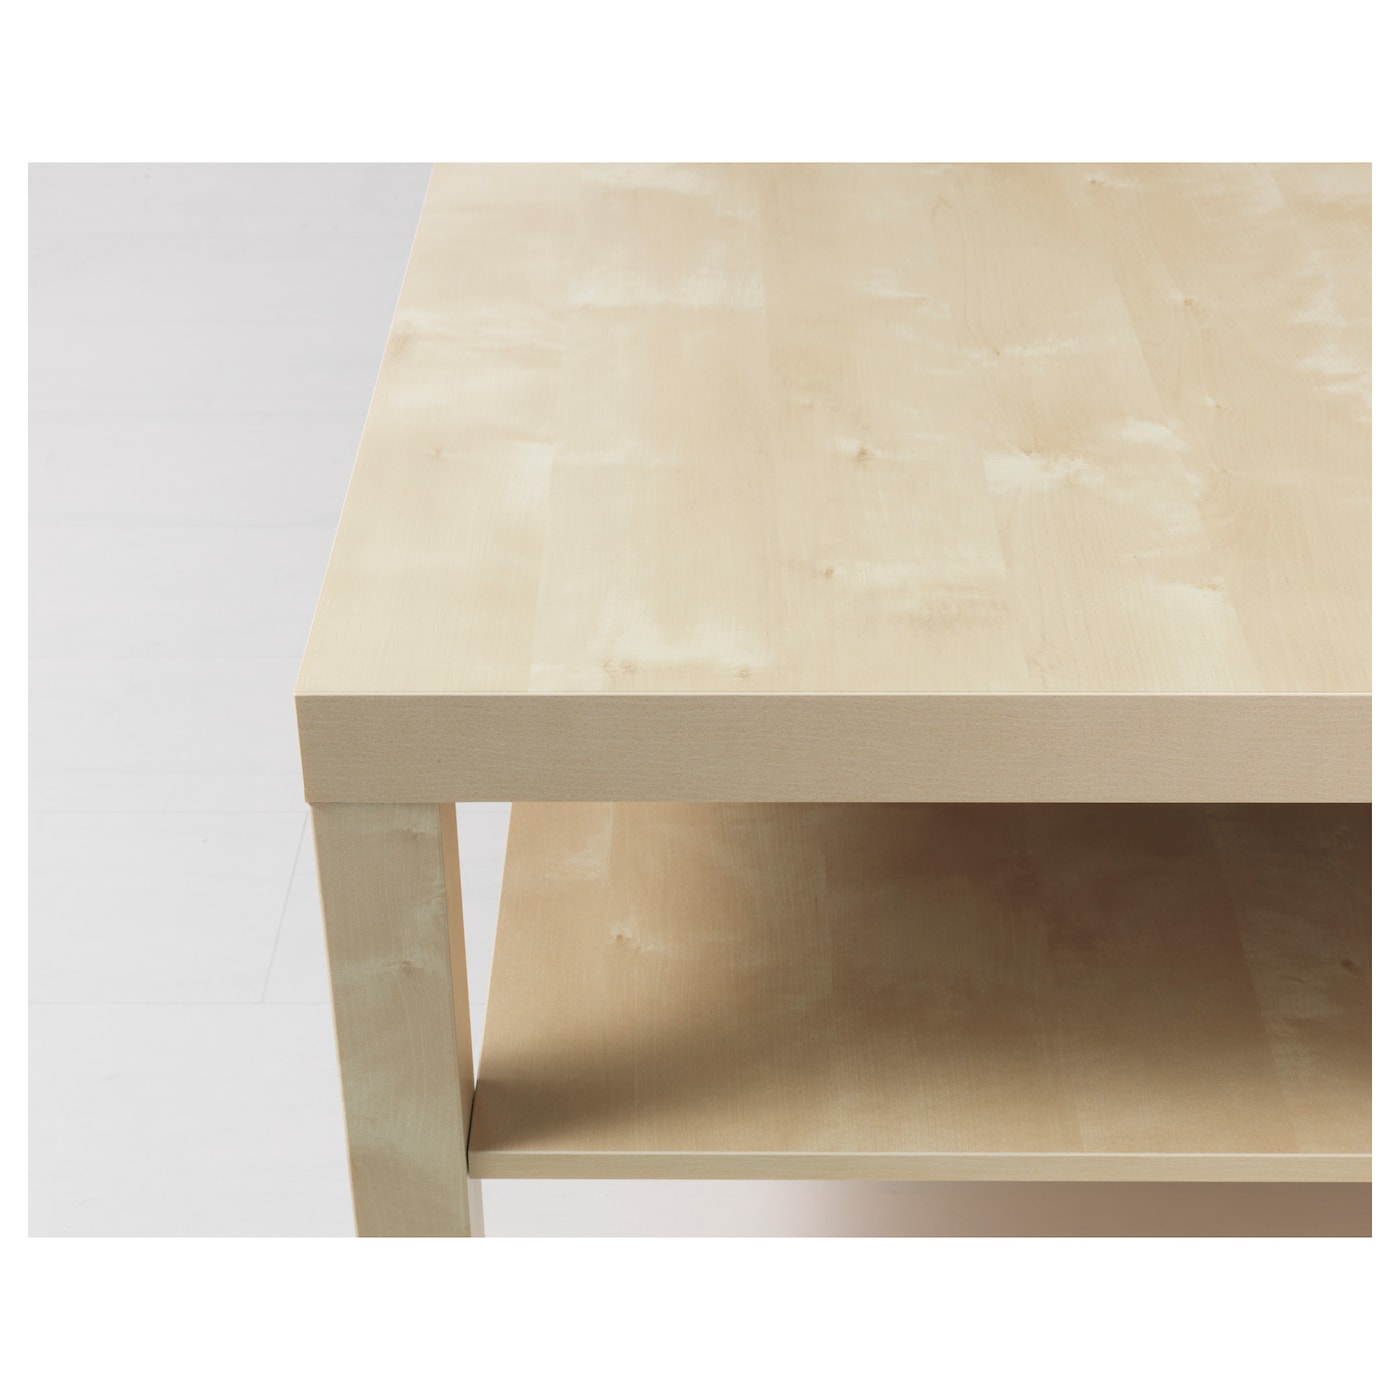 Lack coffee table birch effect 118x78 cm ikea - Table basse escamotable ikea ...